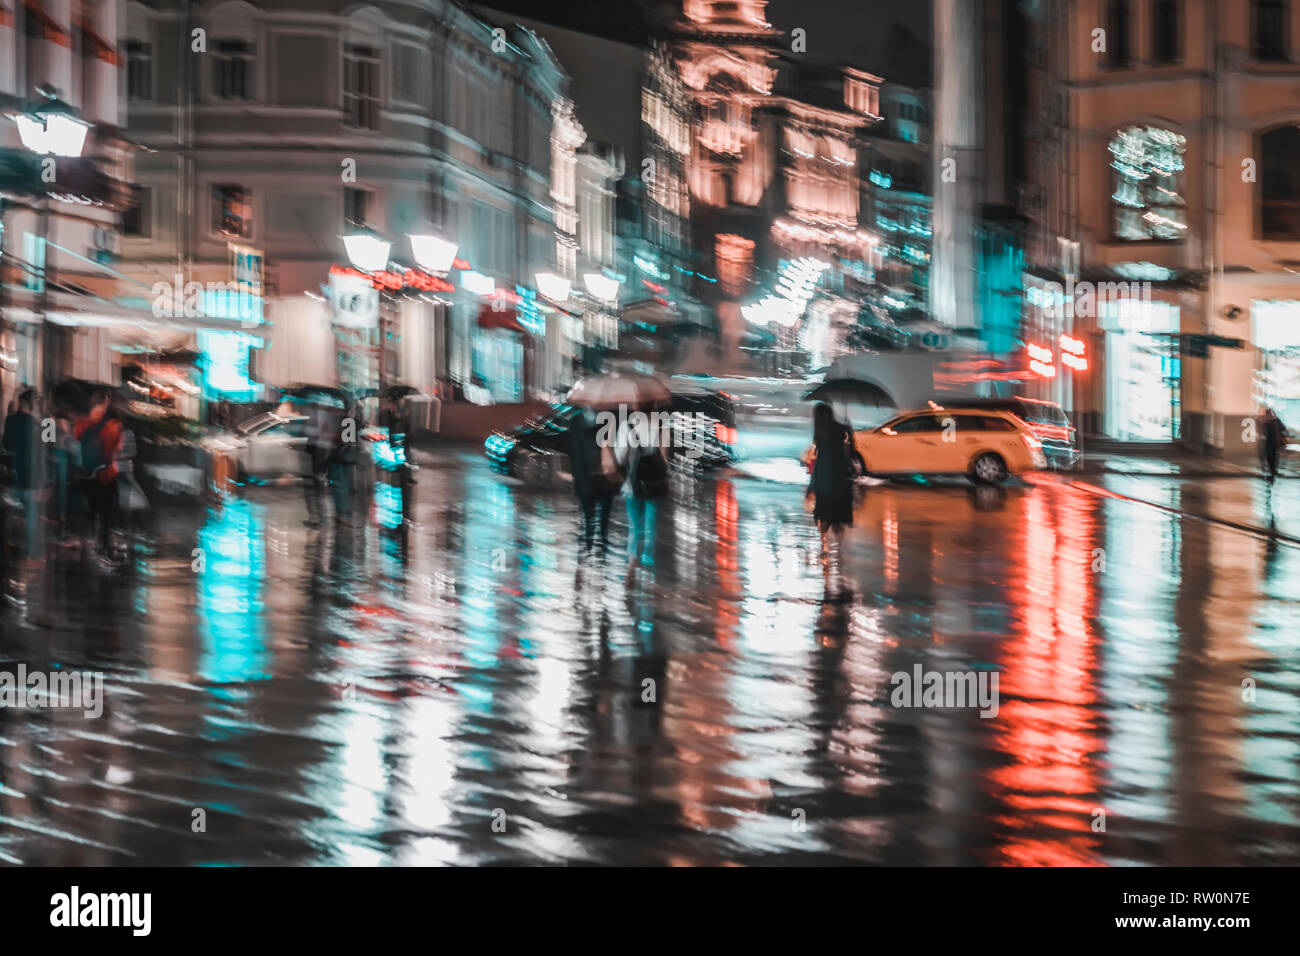 City street in rainy night, Abstract bright blurred background with unidentified people. Vivid illumination, reflection in wet pavement of shop - Stock Image